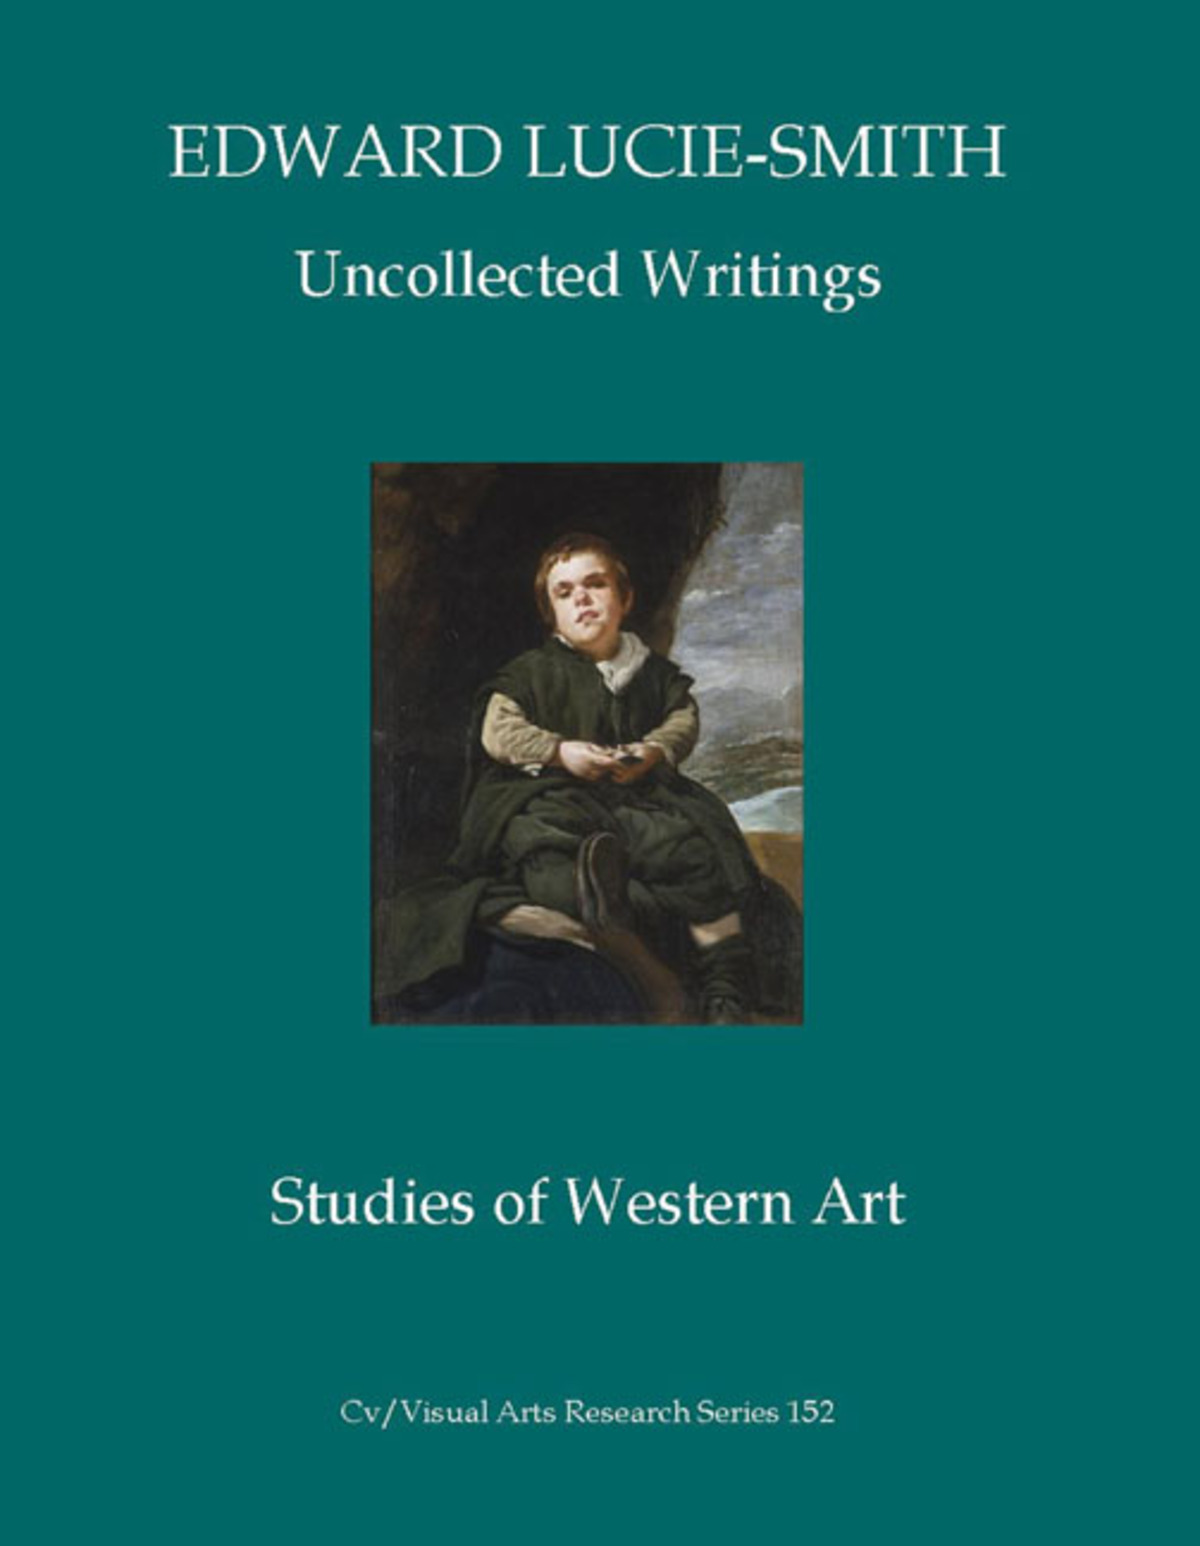 Edward Lucie-Smith: Uncollected Writings: Studies of Western Art